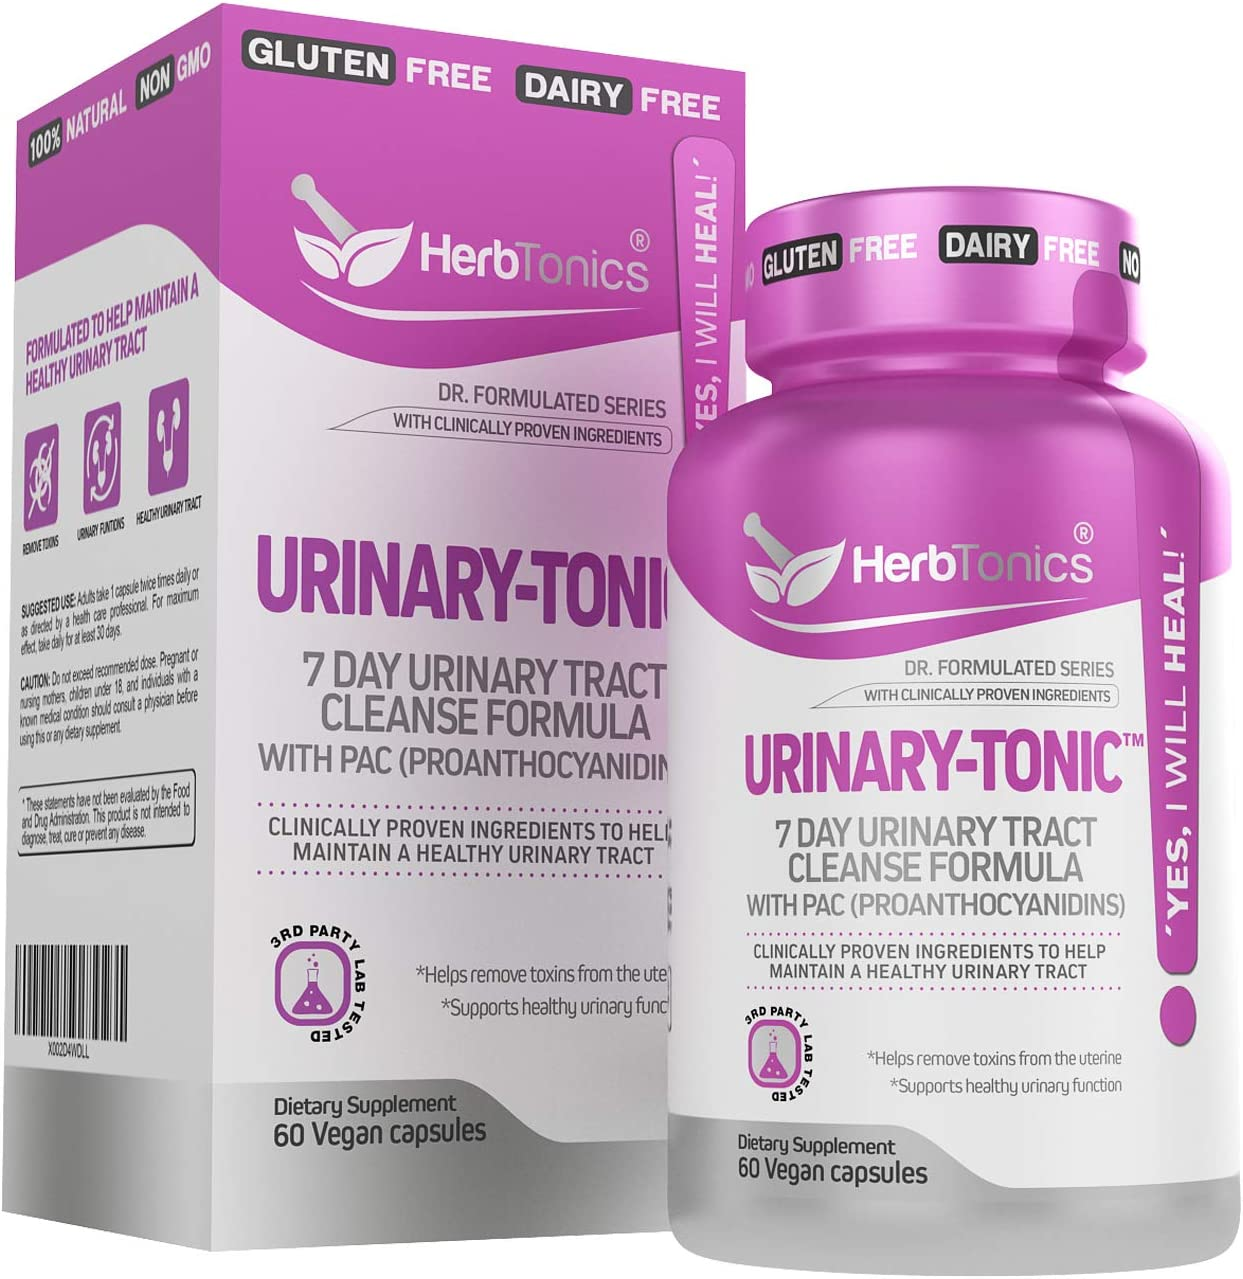 Urinary-Tonic Urinary Tract Cleanse Treatment Formula UTI with 36 mg PAC Medical-Grade Cranberry Supplement for UTI Prevention with D-Mannose